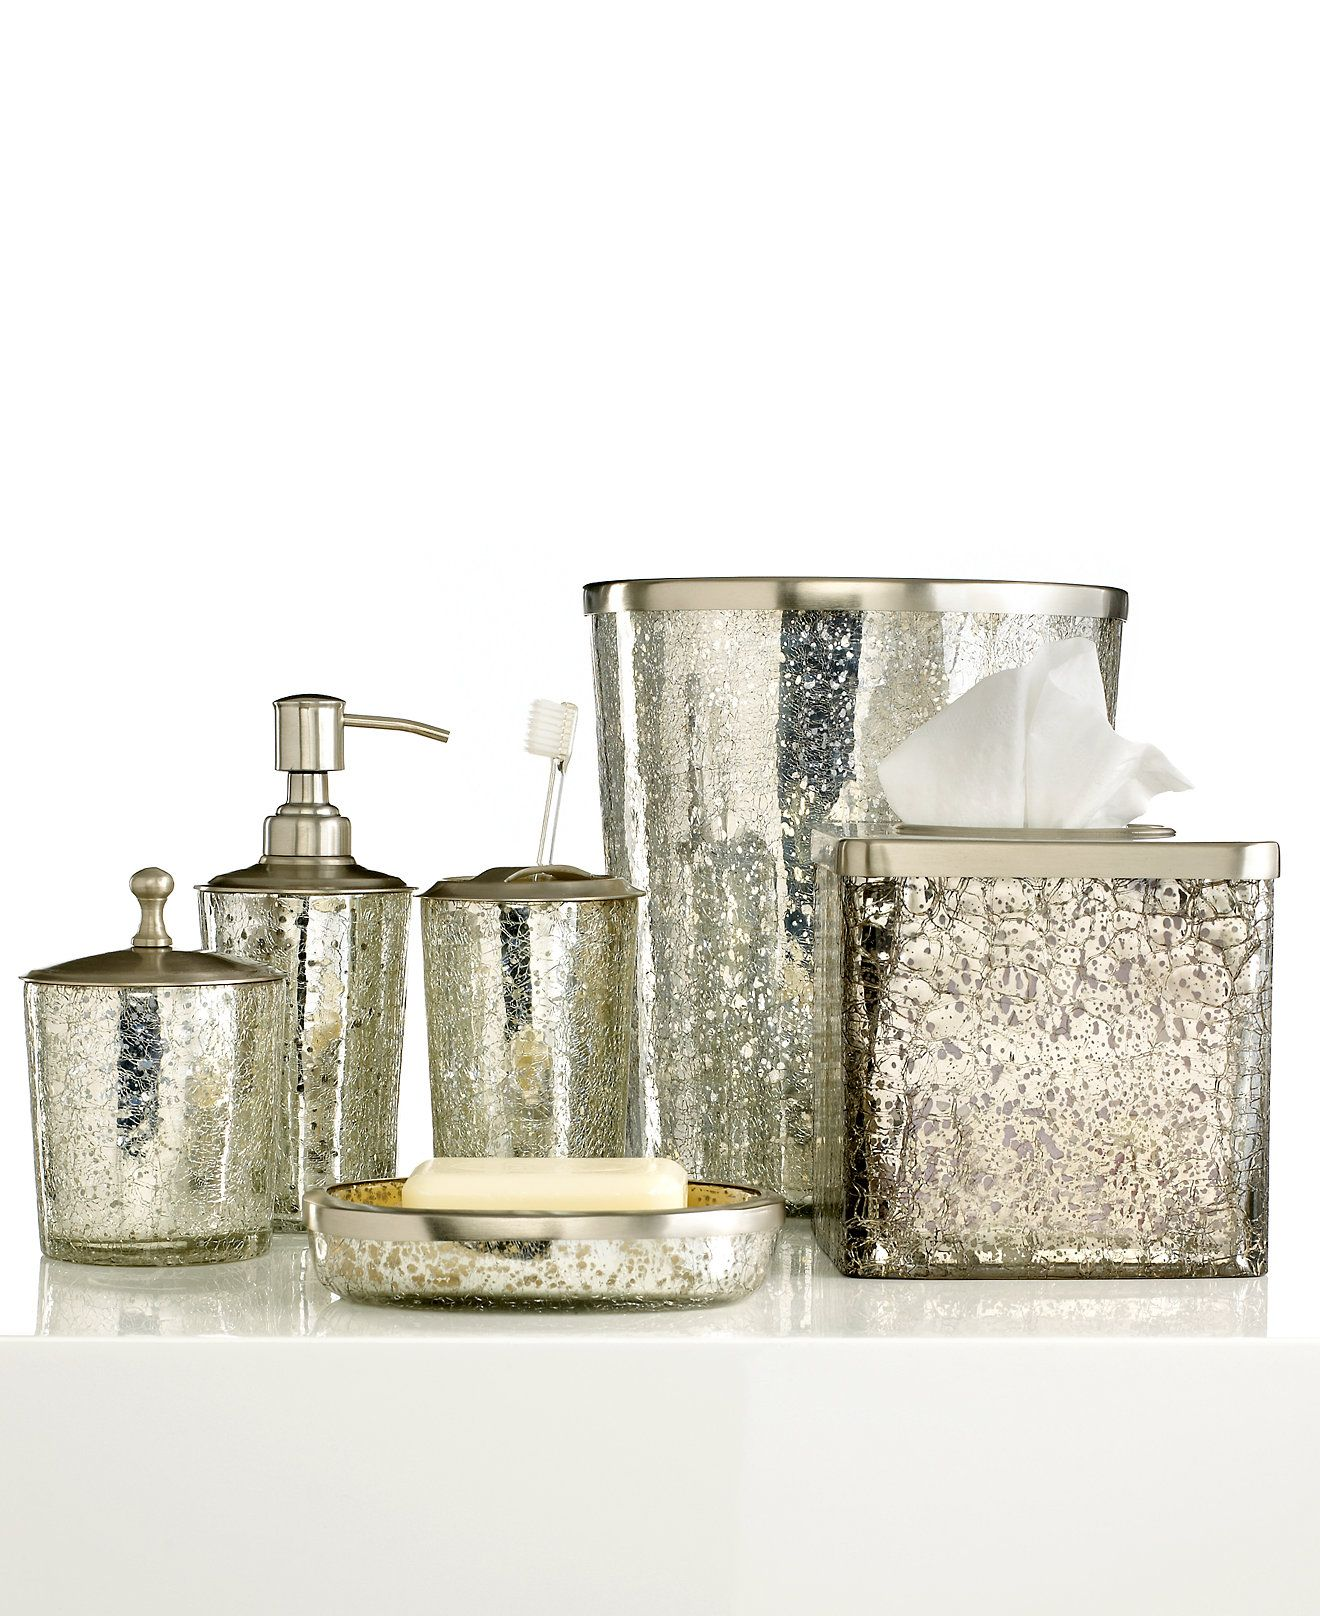 Rustic Bathroom Accessories Sets Bath Accessories Crackle Glass Ice Collection In 2019 Macy S